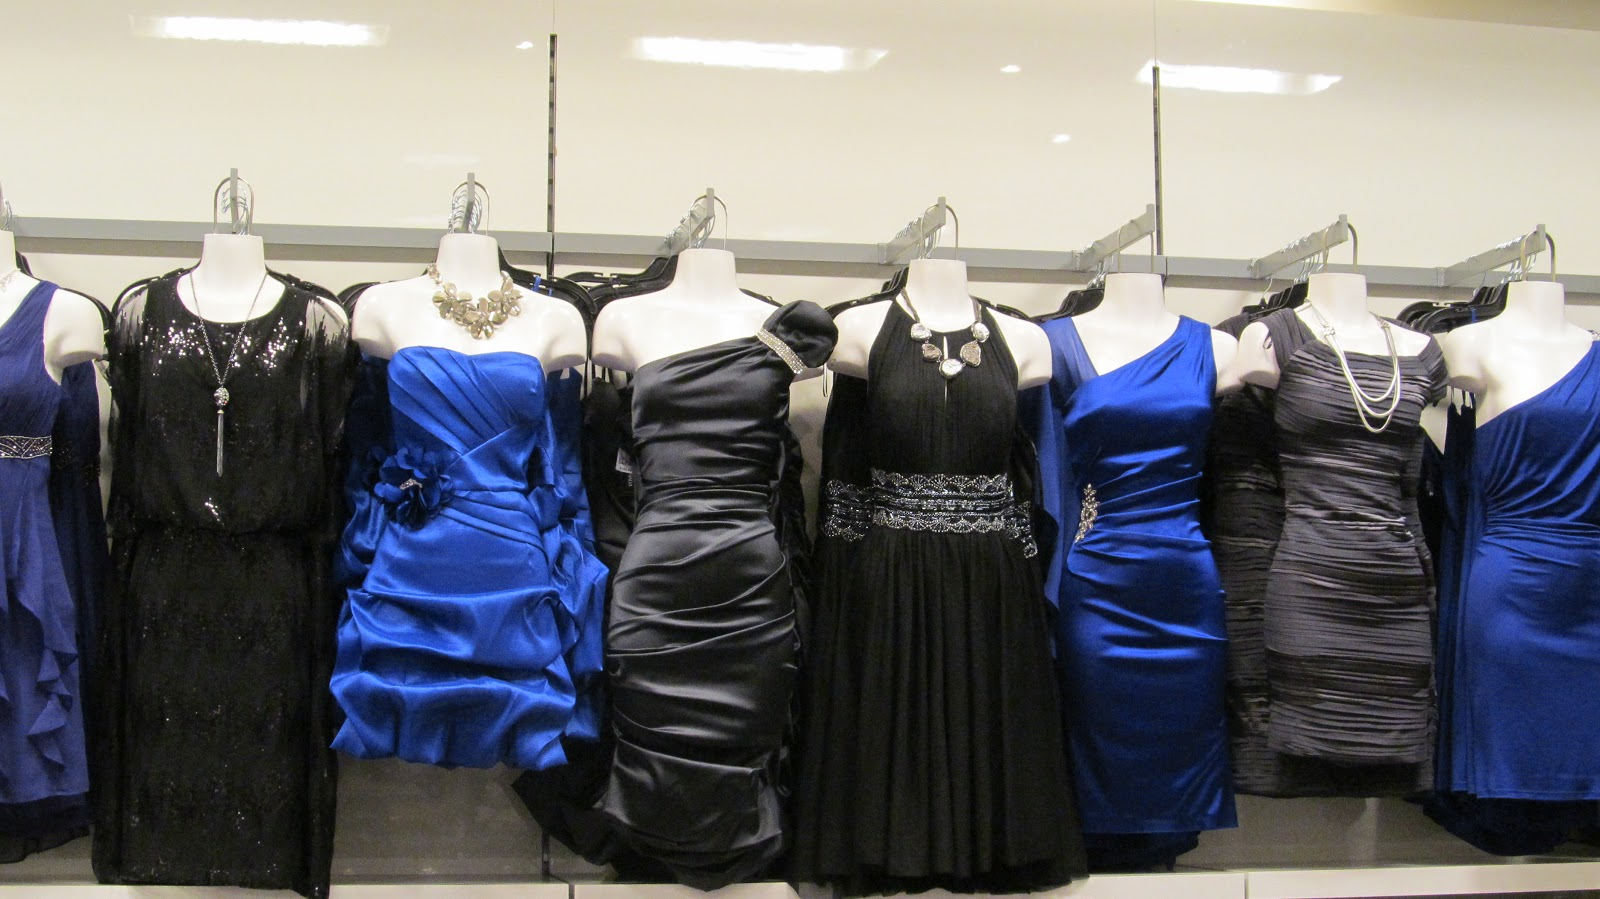 Any shape size or dress holiday party dresses at le chateau